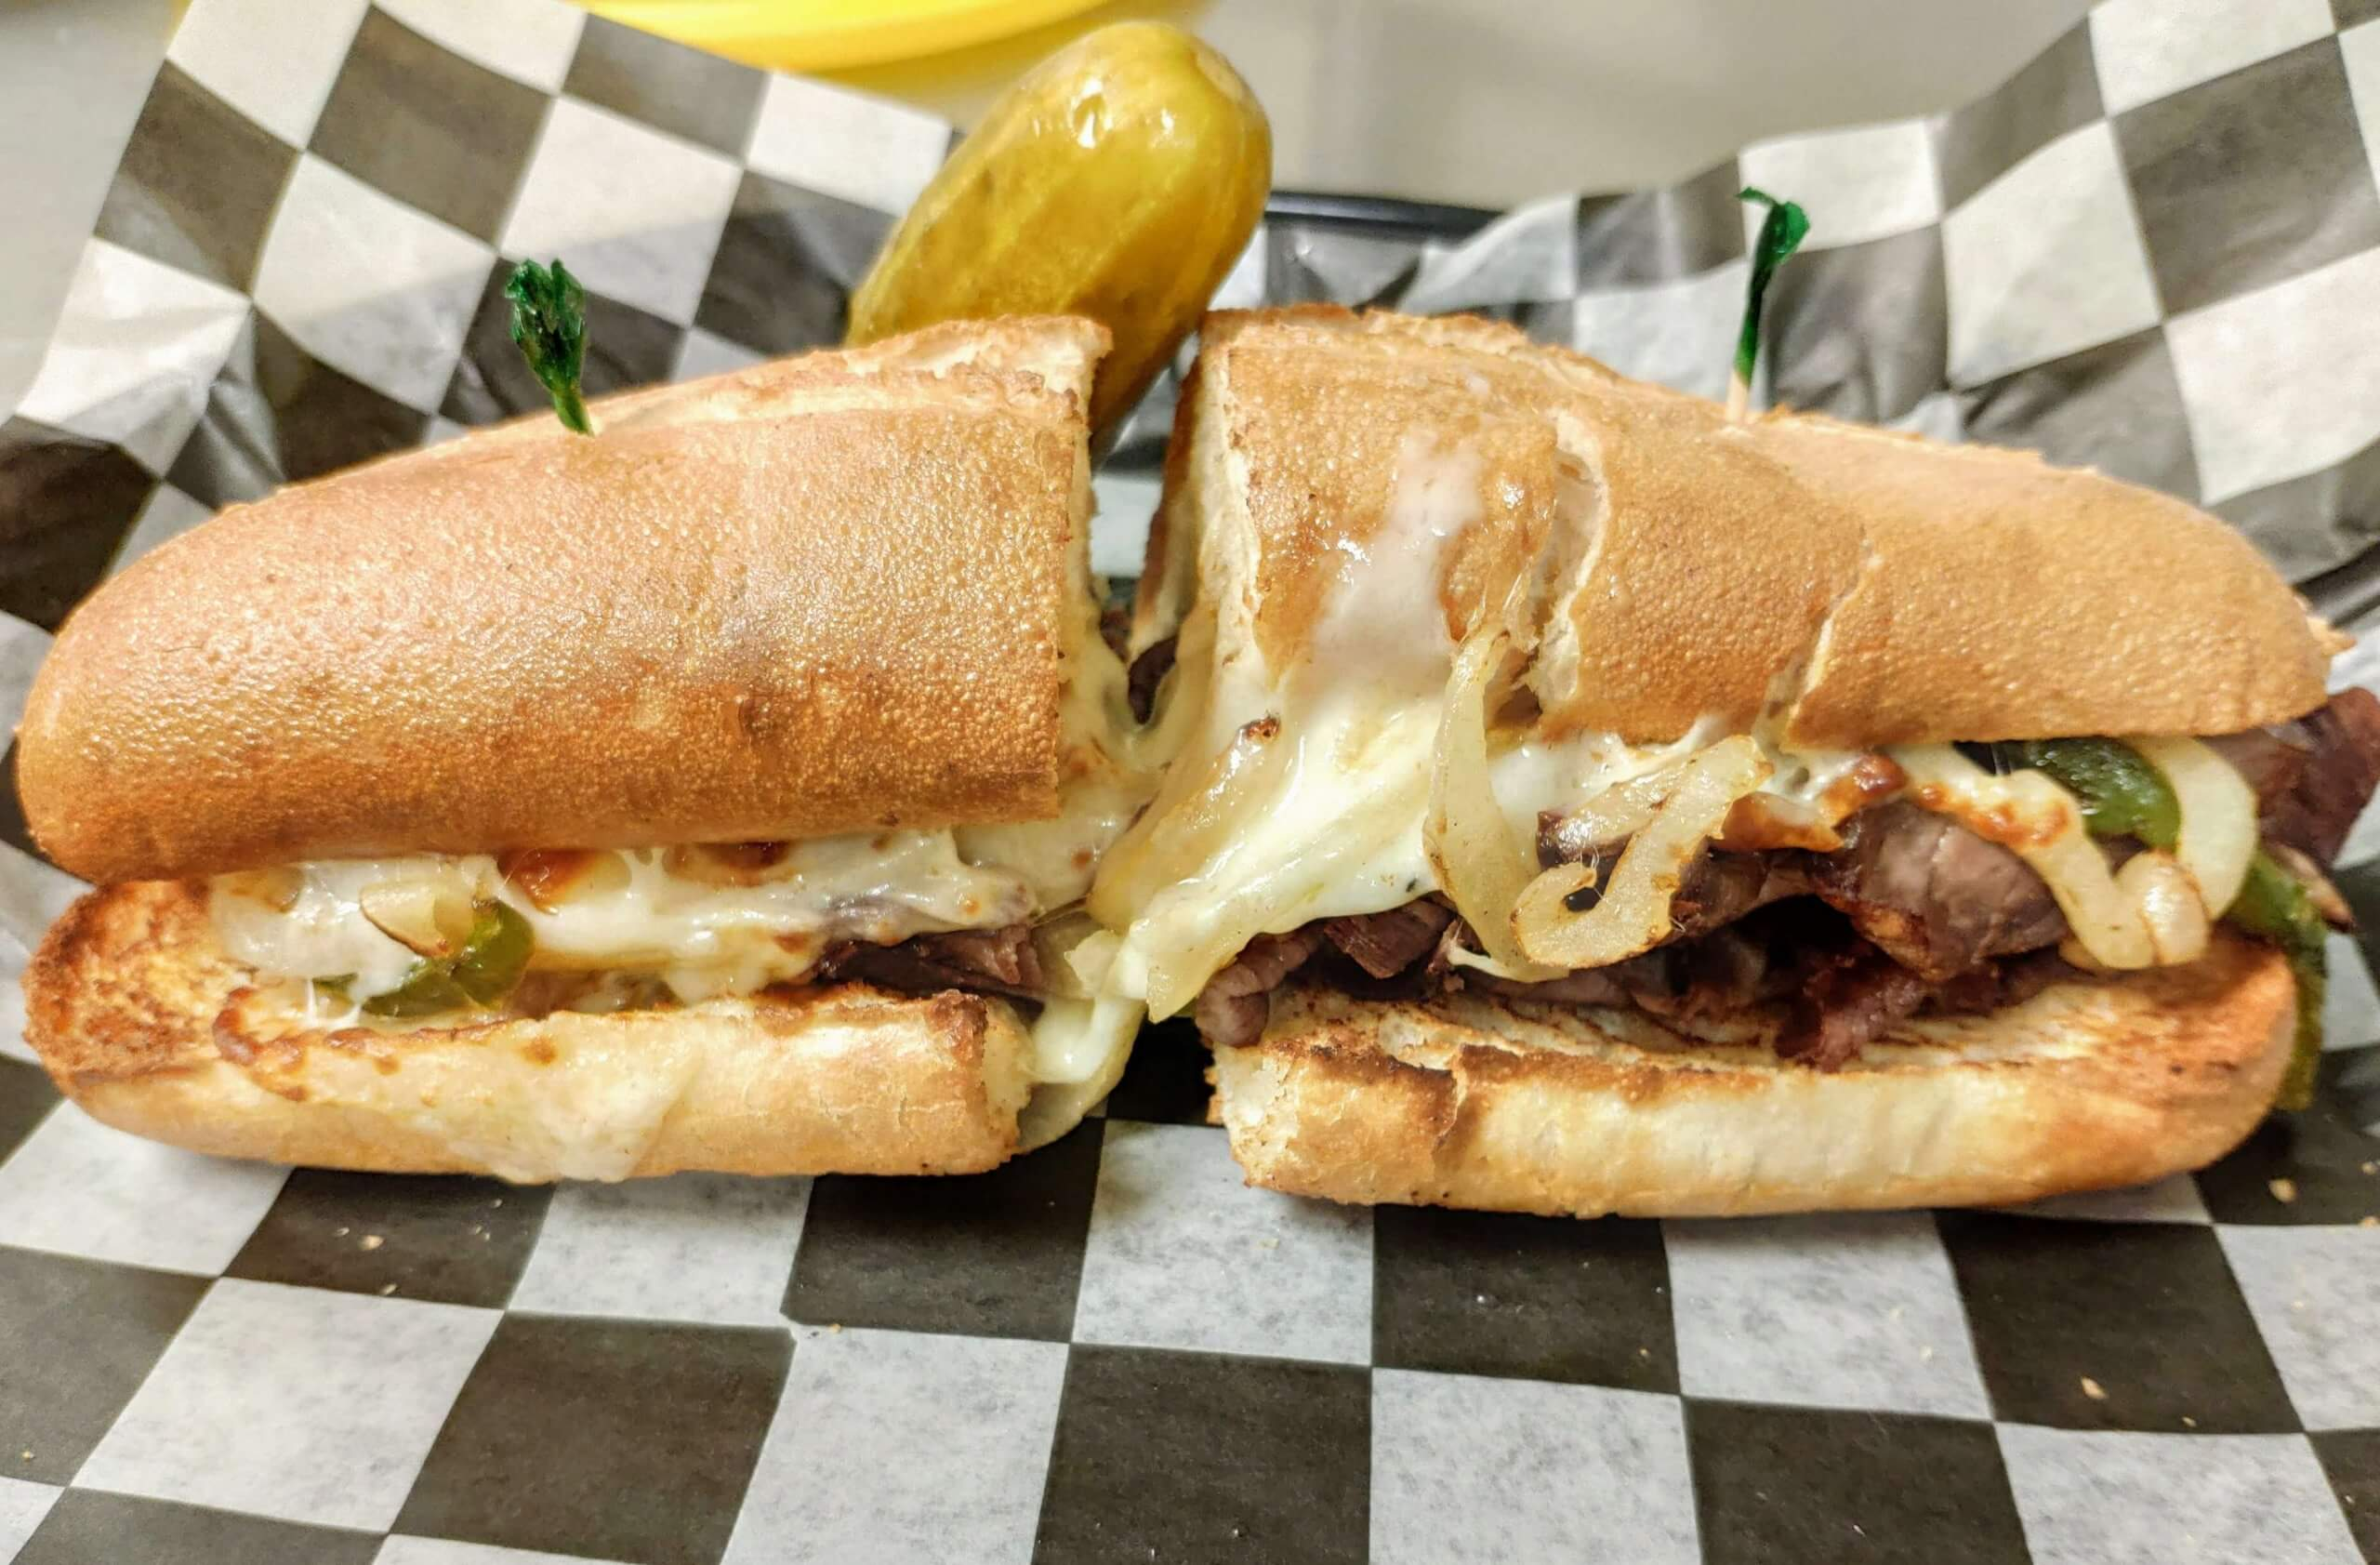 Deli Style Steak and Cheese